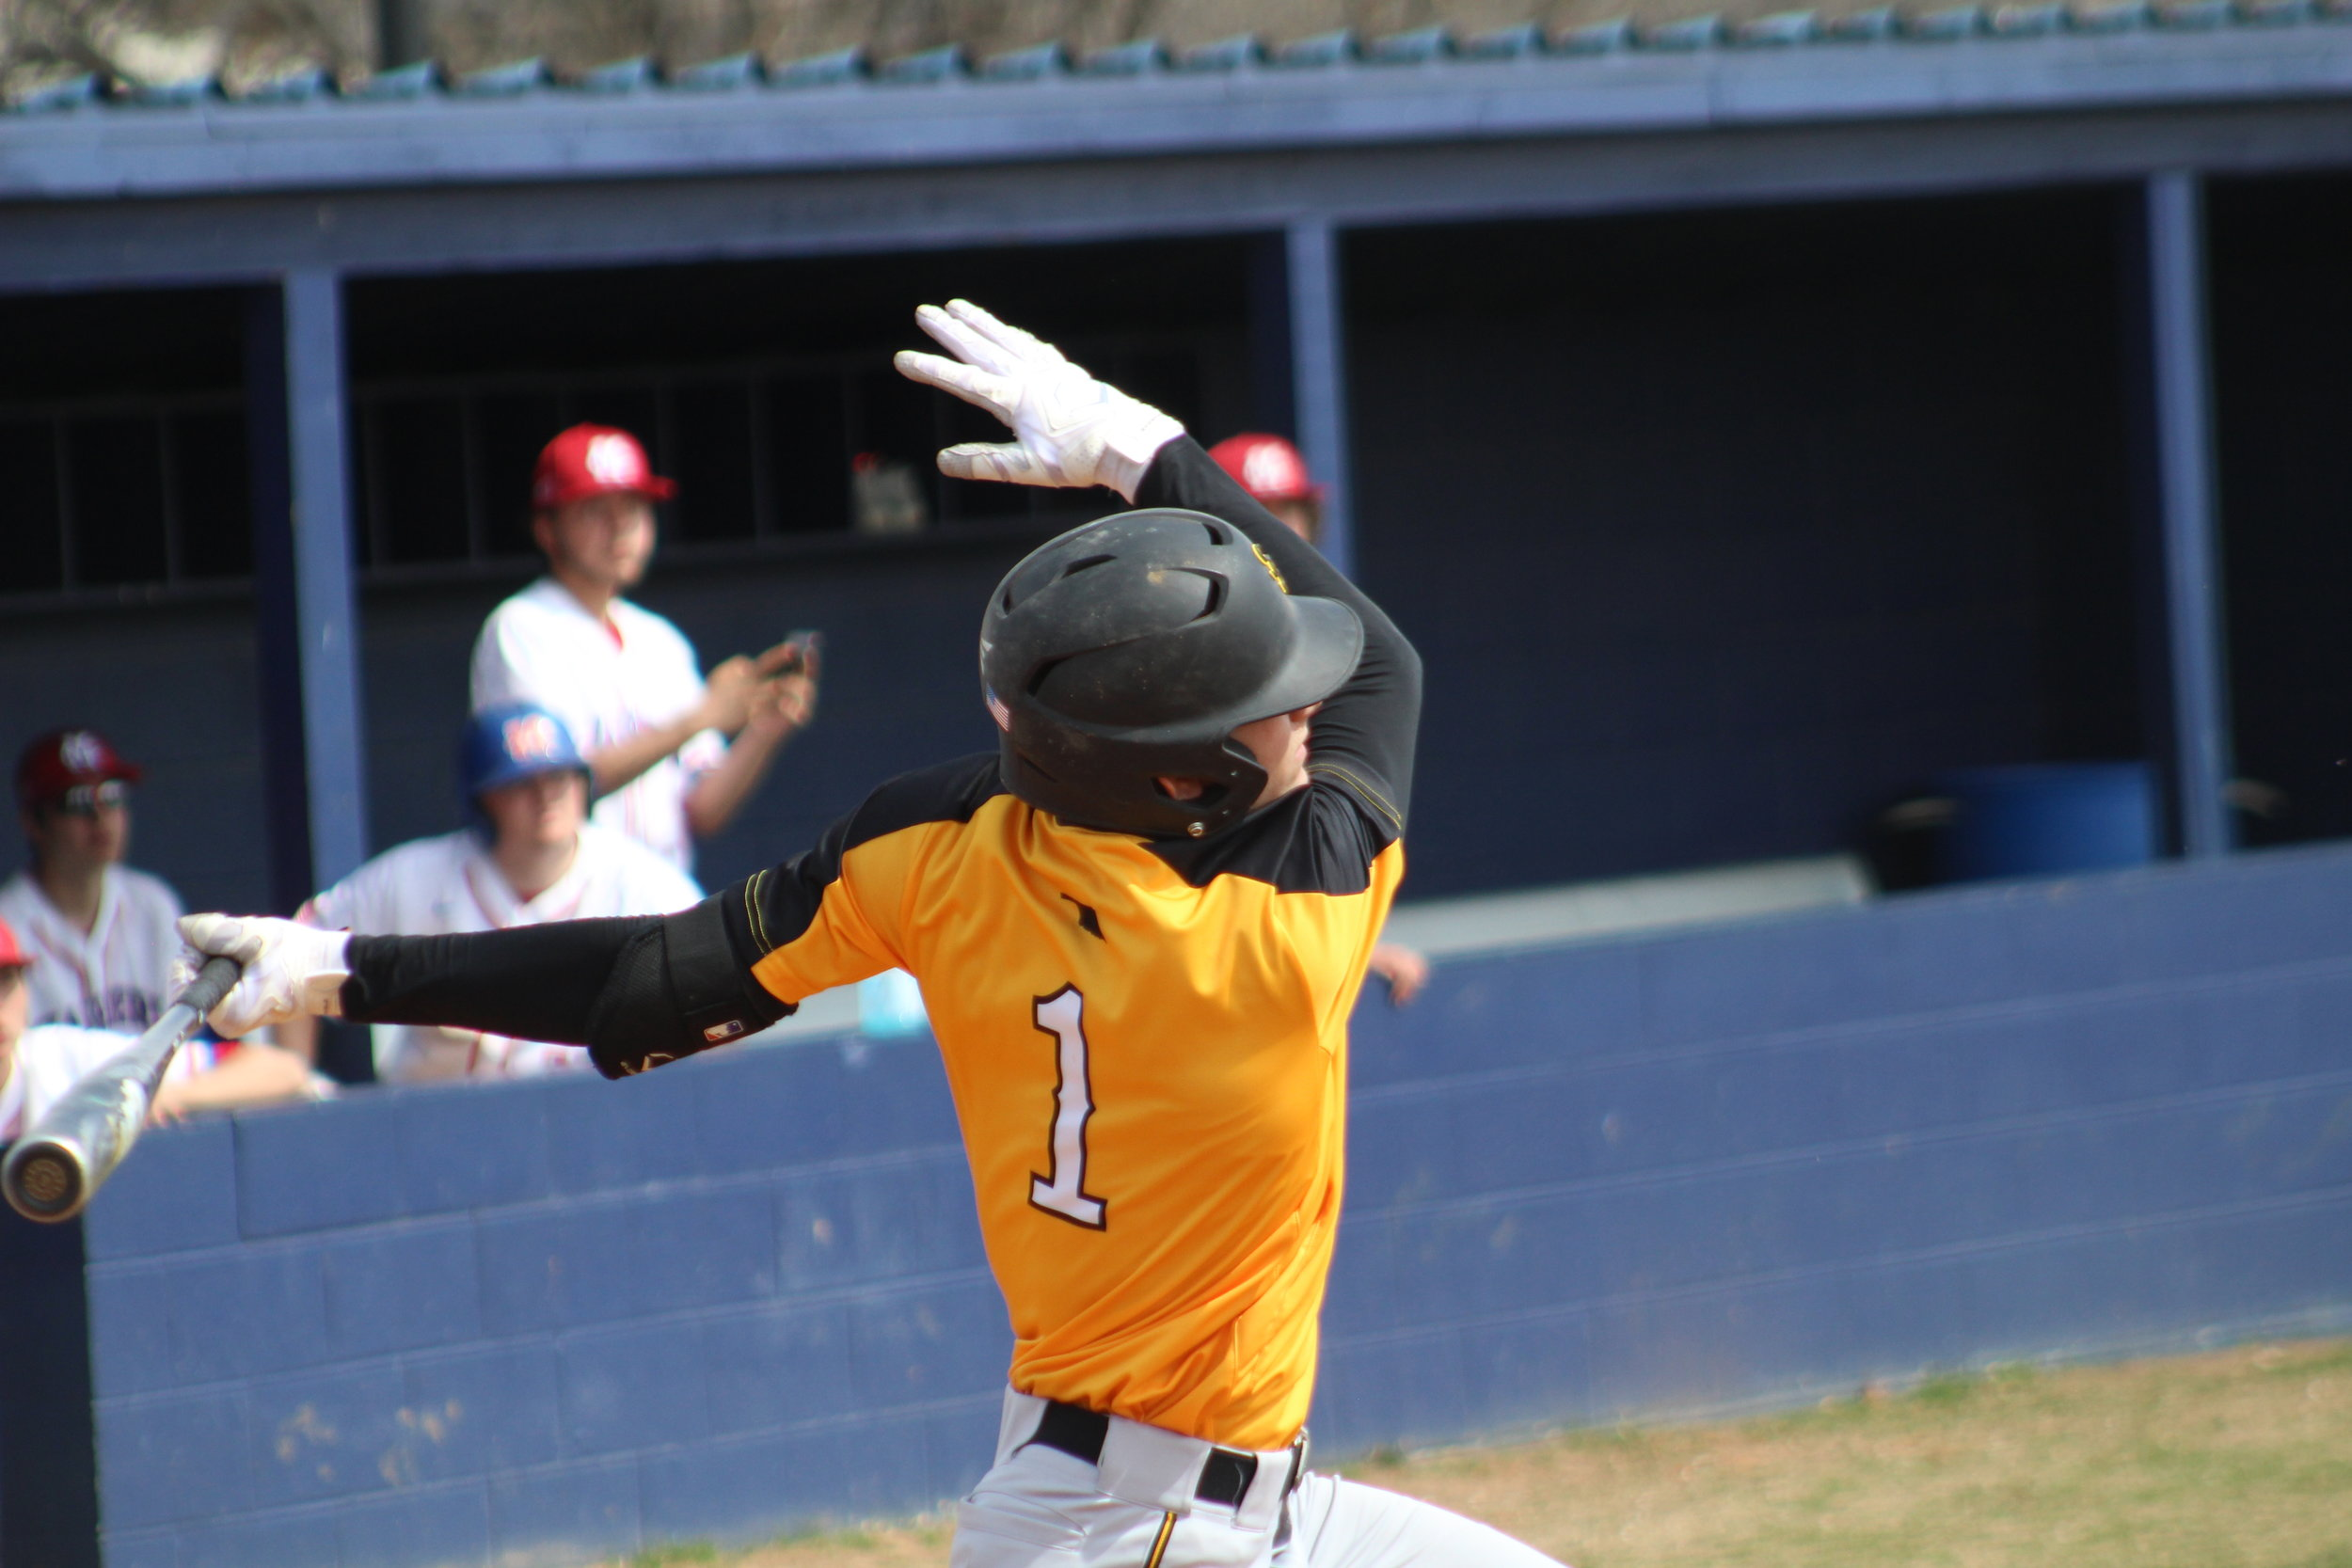 Tyler Ash recorded the first hit and first run of the season for Sand Springs.